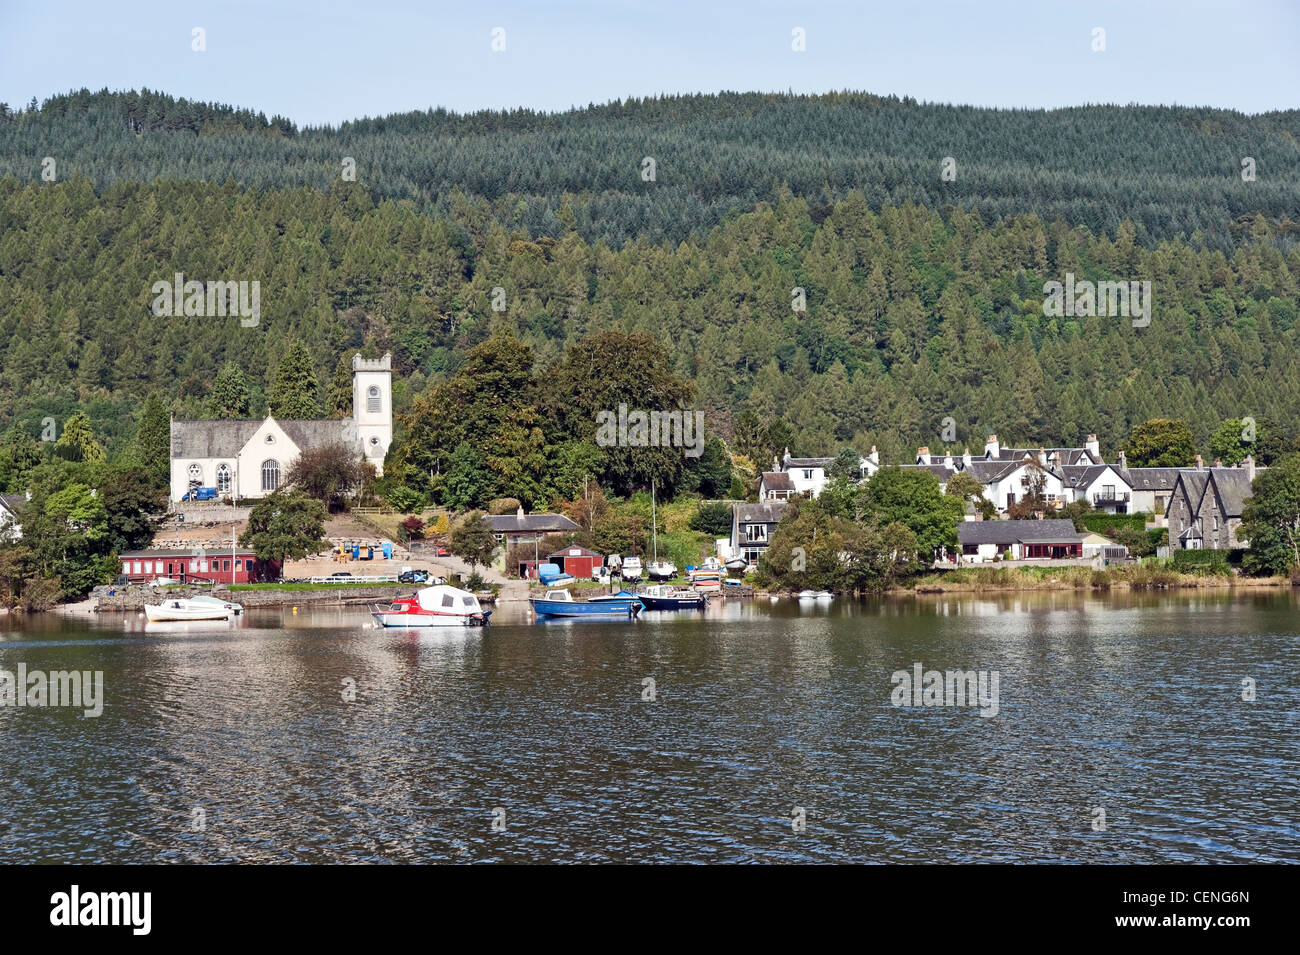 The Scottish village of Kenmore on the River Tay viewed from the south side of the river on a sunny autumn day. - Stock Image